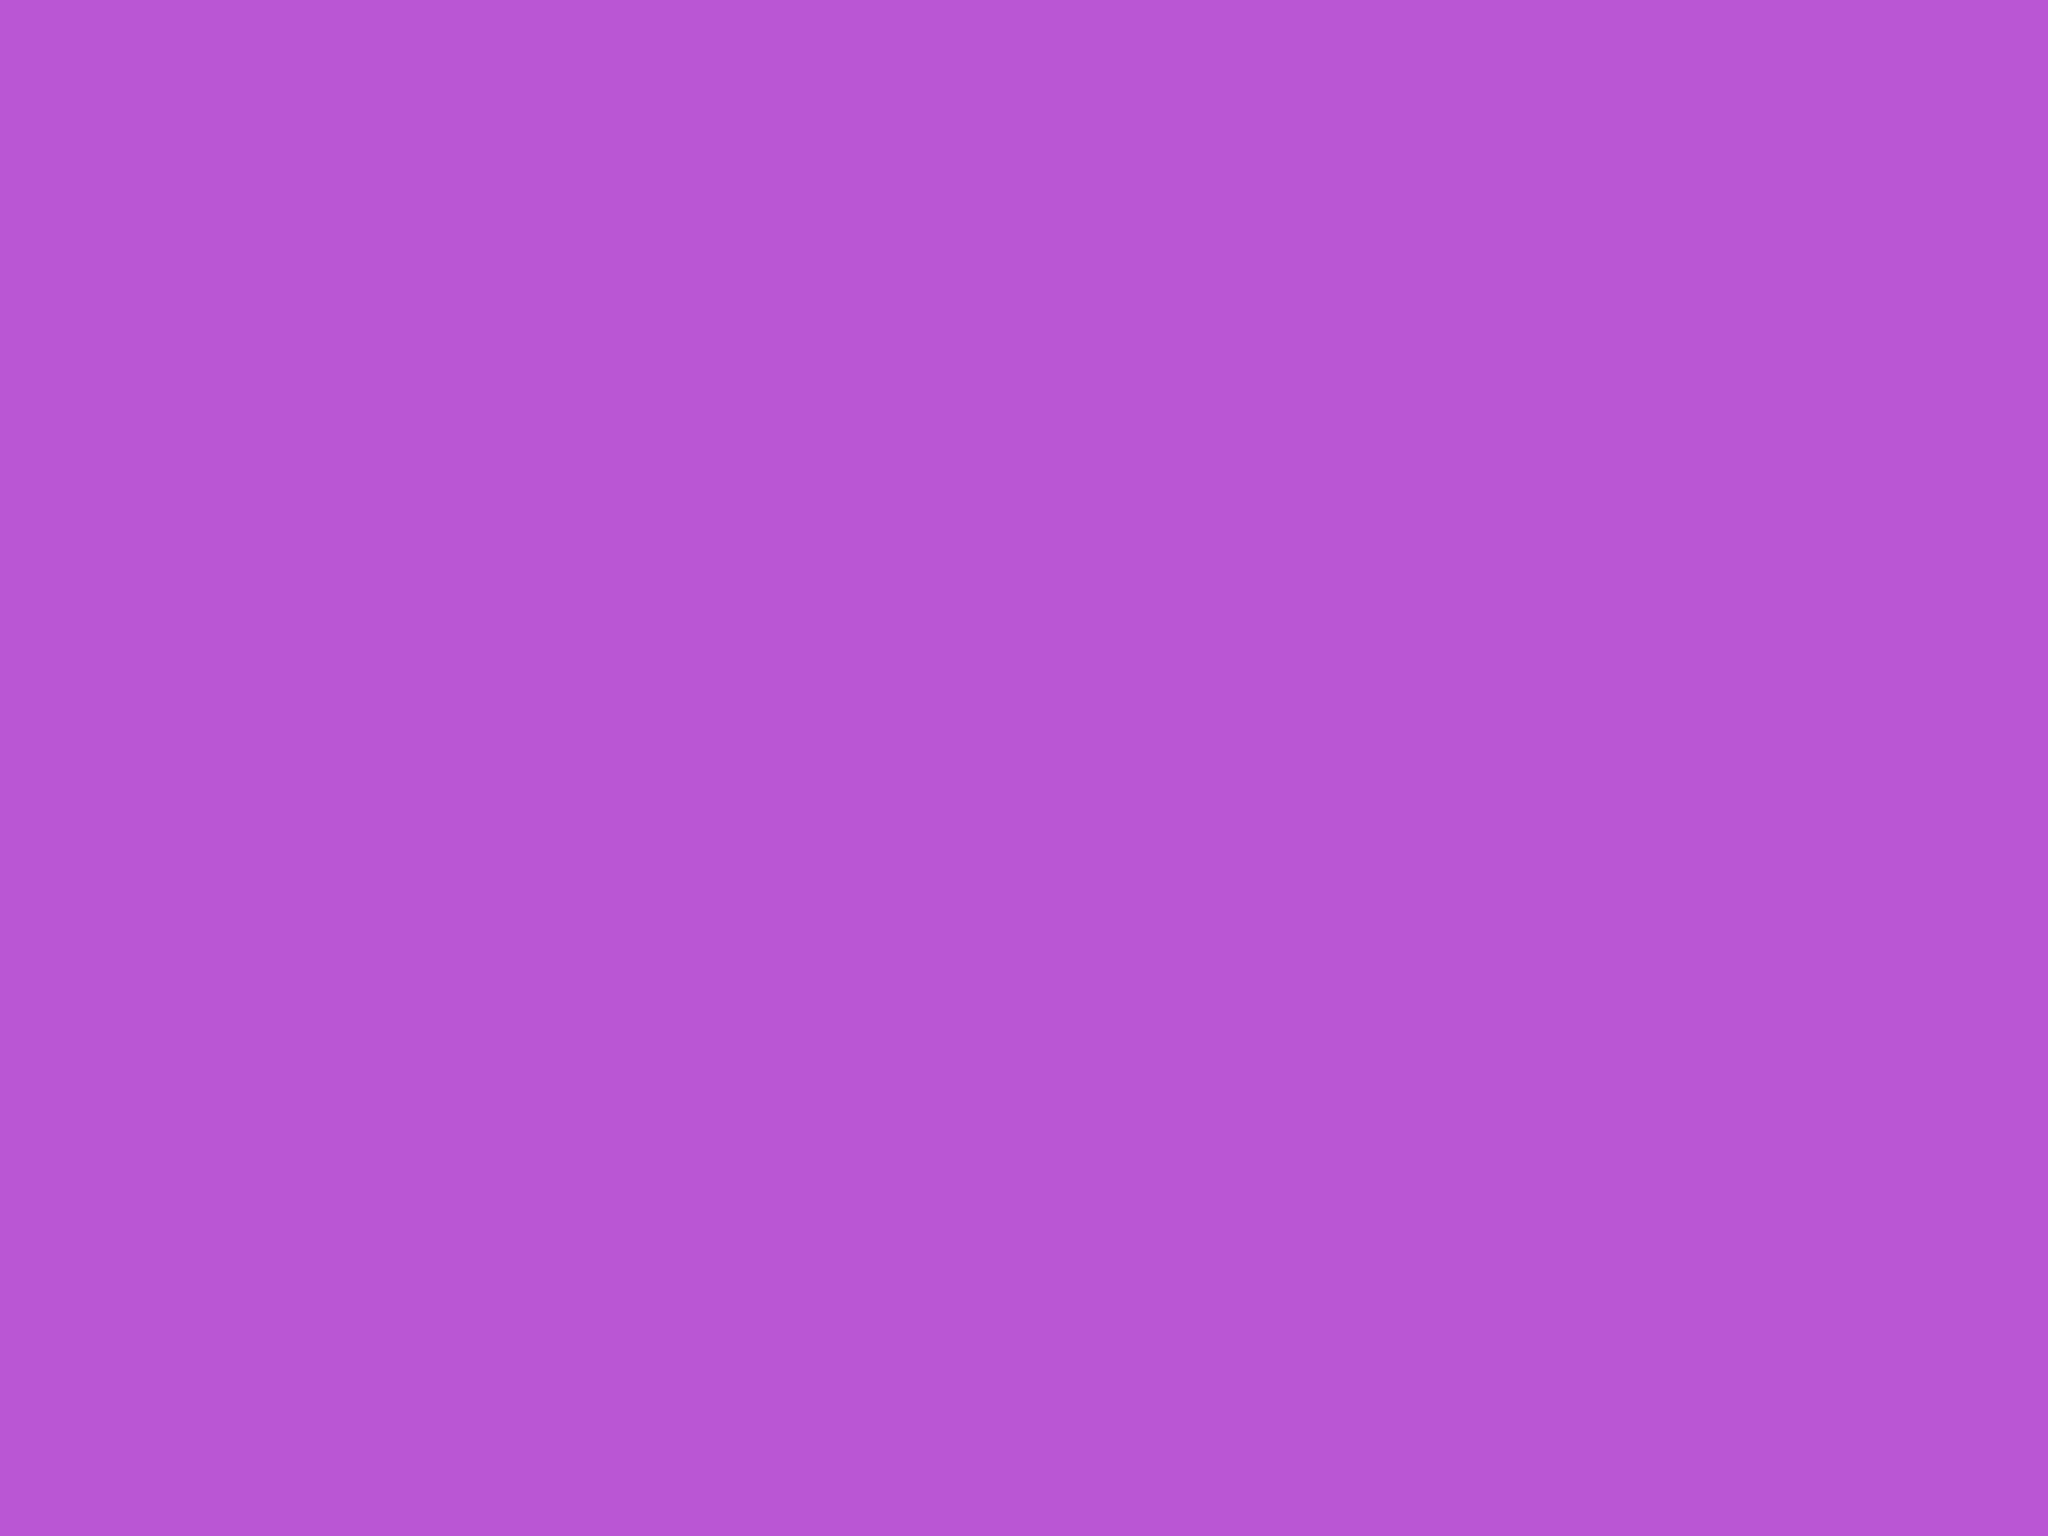 2048x1536 Medium Orchid Solid Color Background